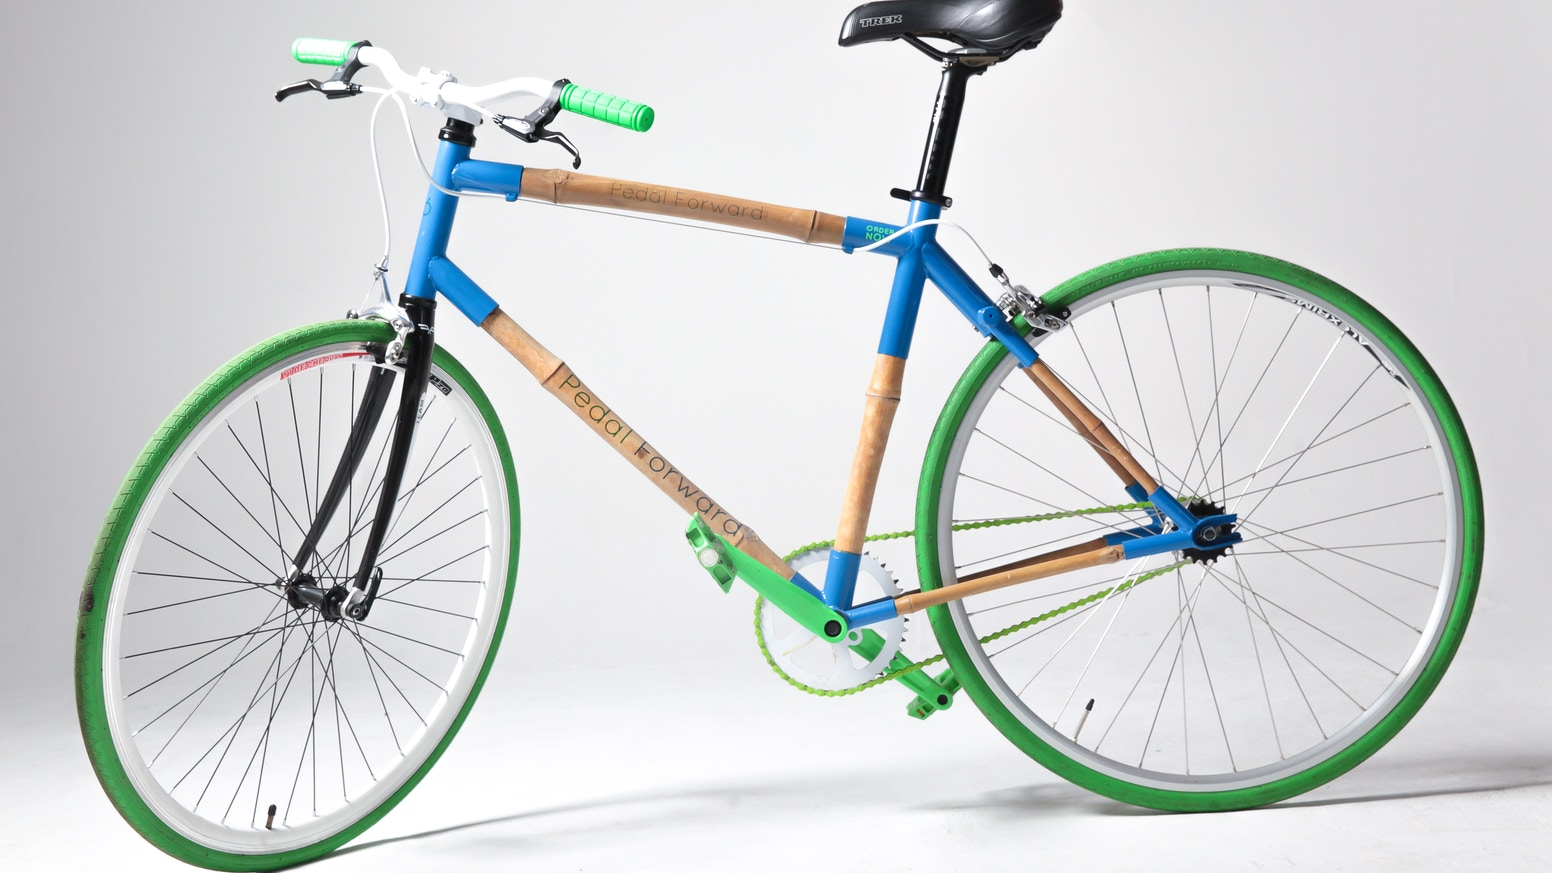 Pedal Forward builds bamboo bicycles that turn heads without breaking the bank, while supporting bicycle access worldwide.